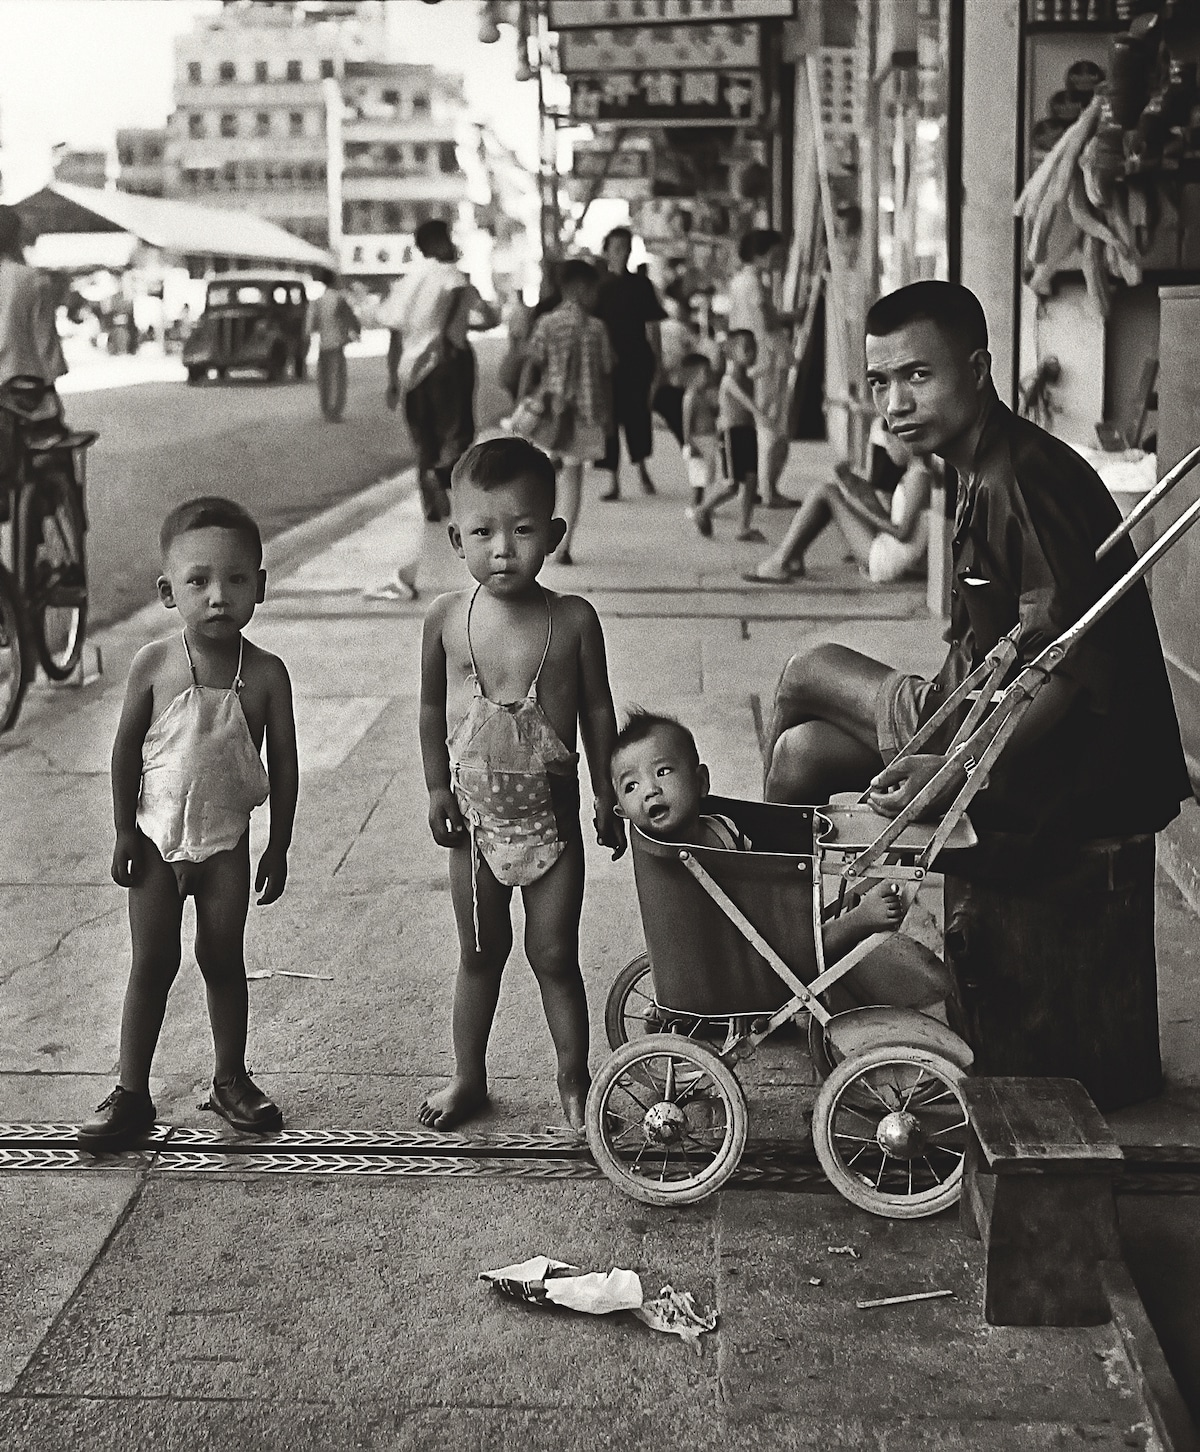 Fan Ho - Hong Kong Street Photography at the Blue Lotus Gallery